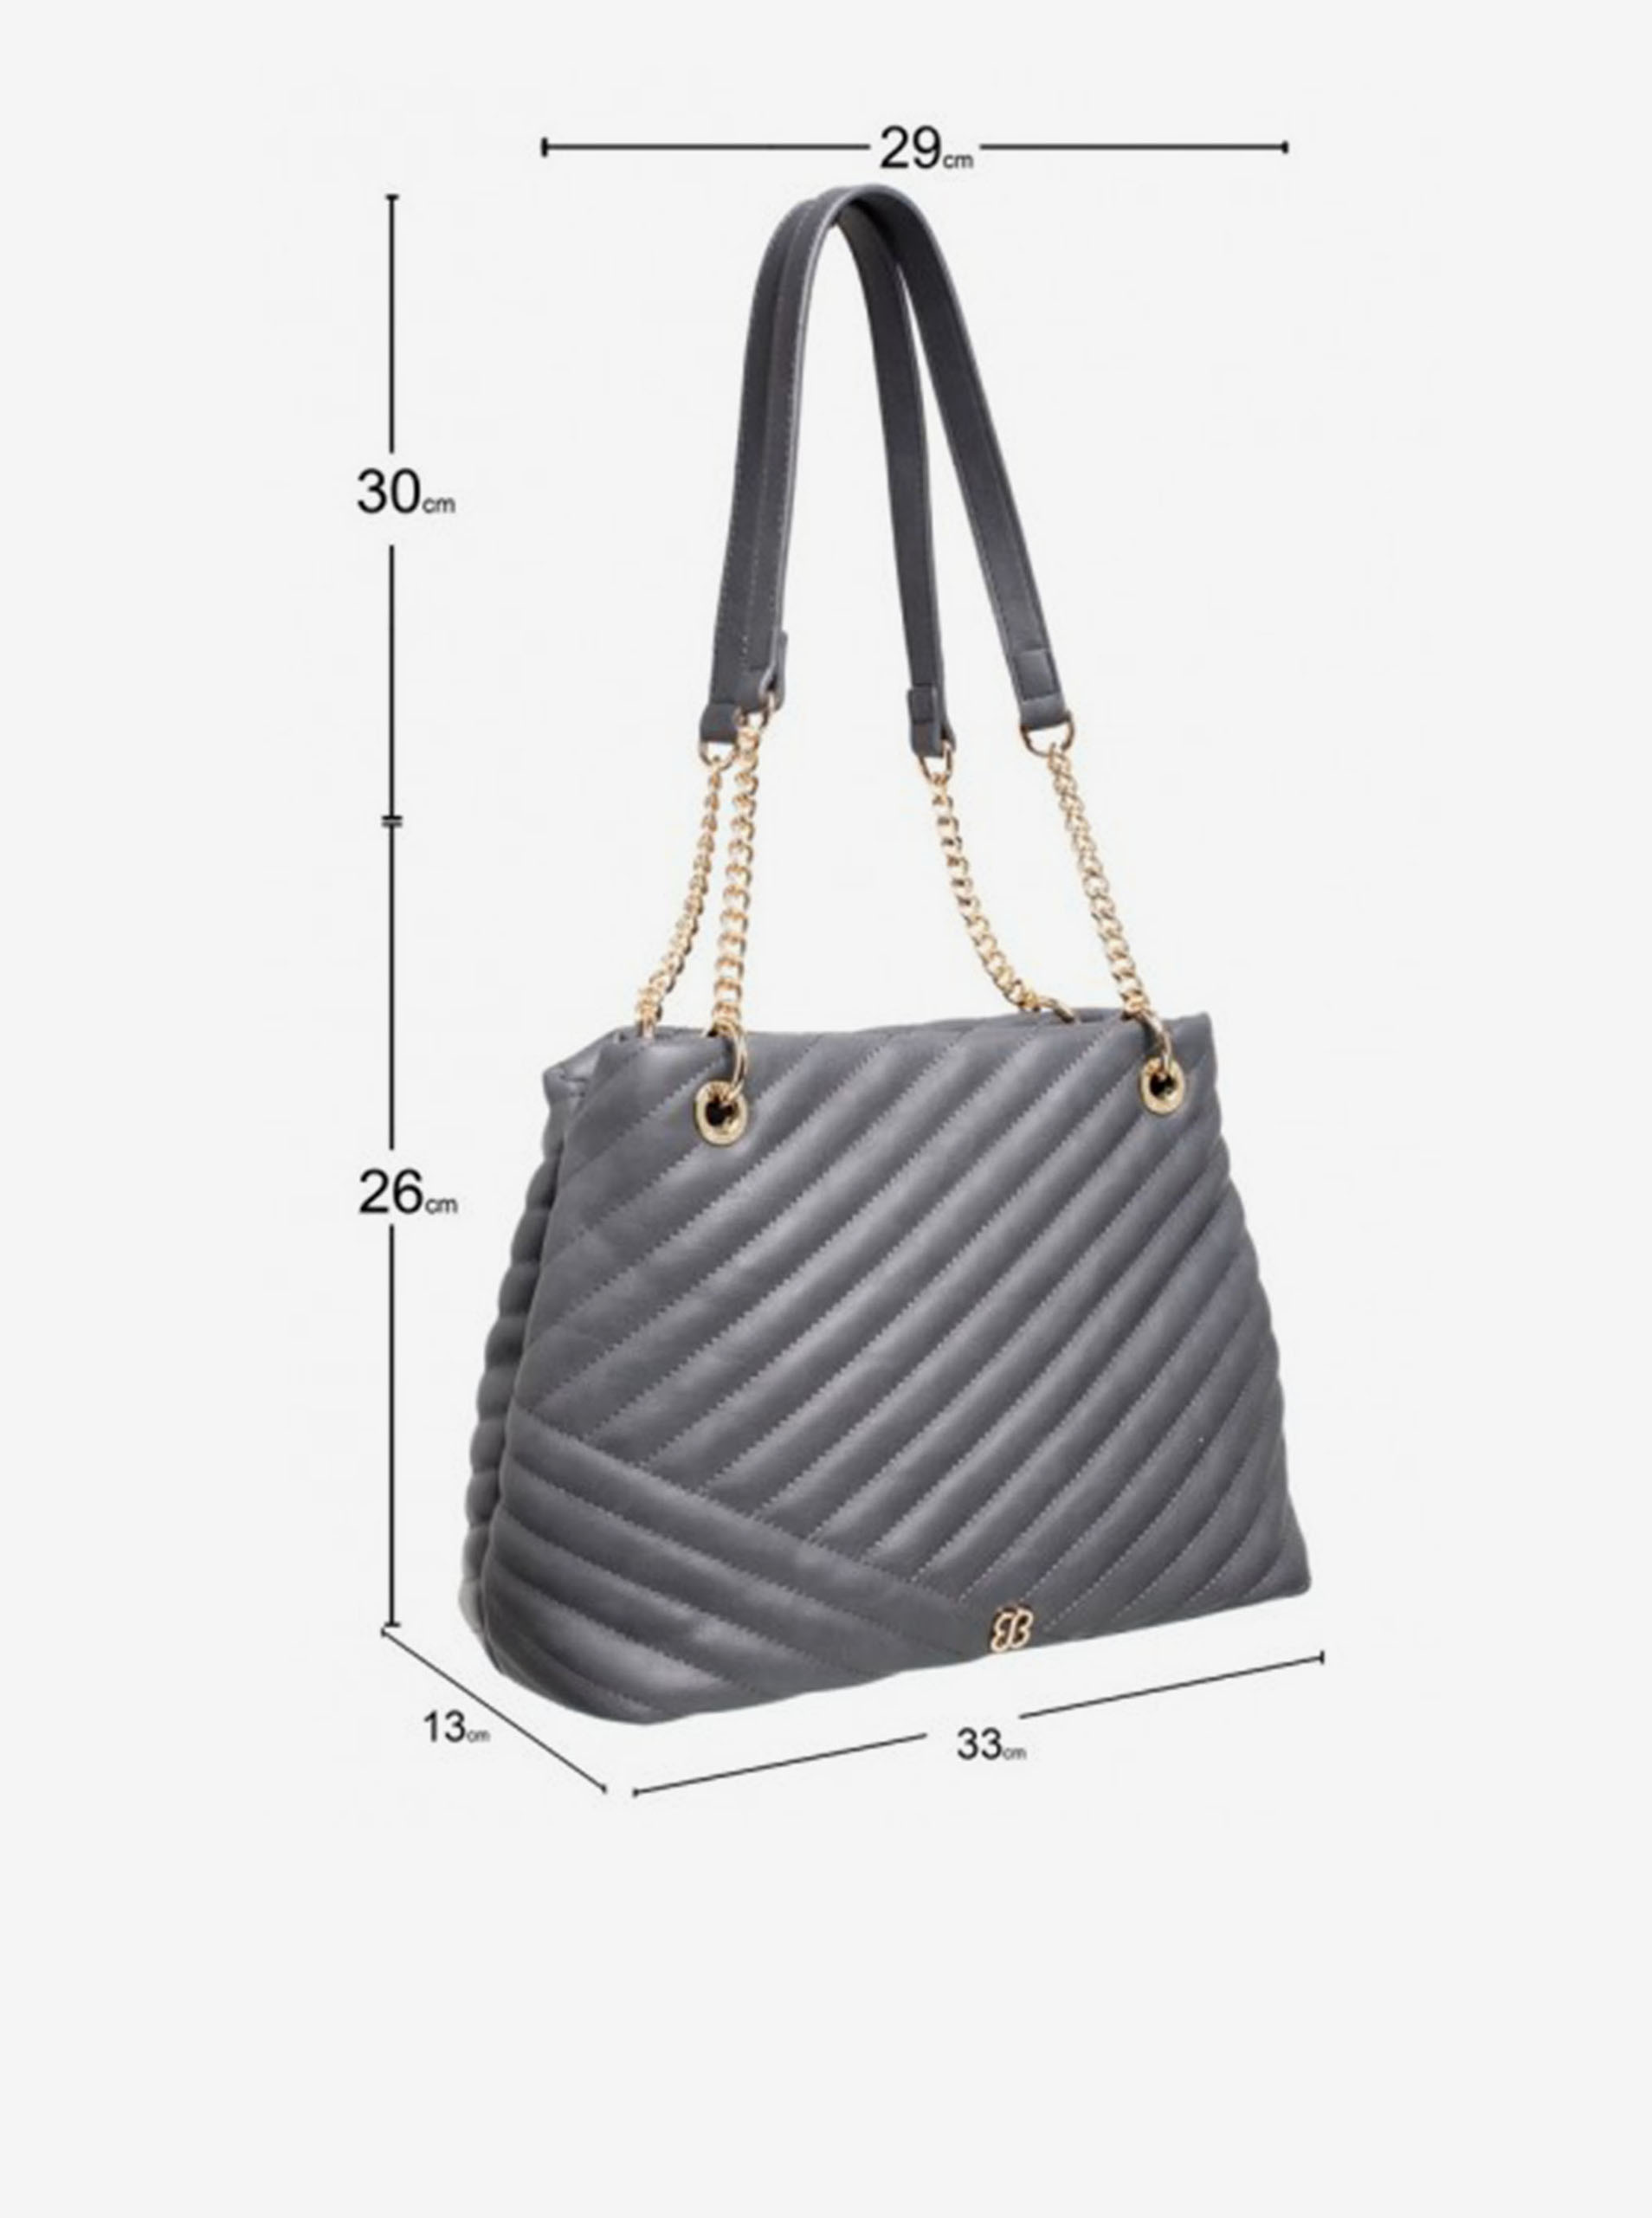 Gray Bessie London handbag